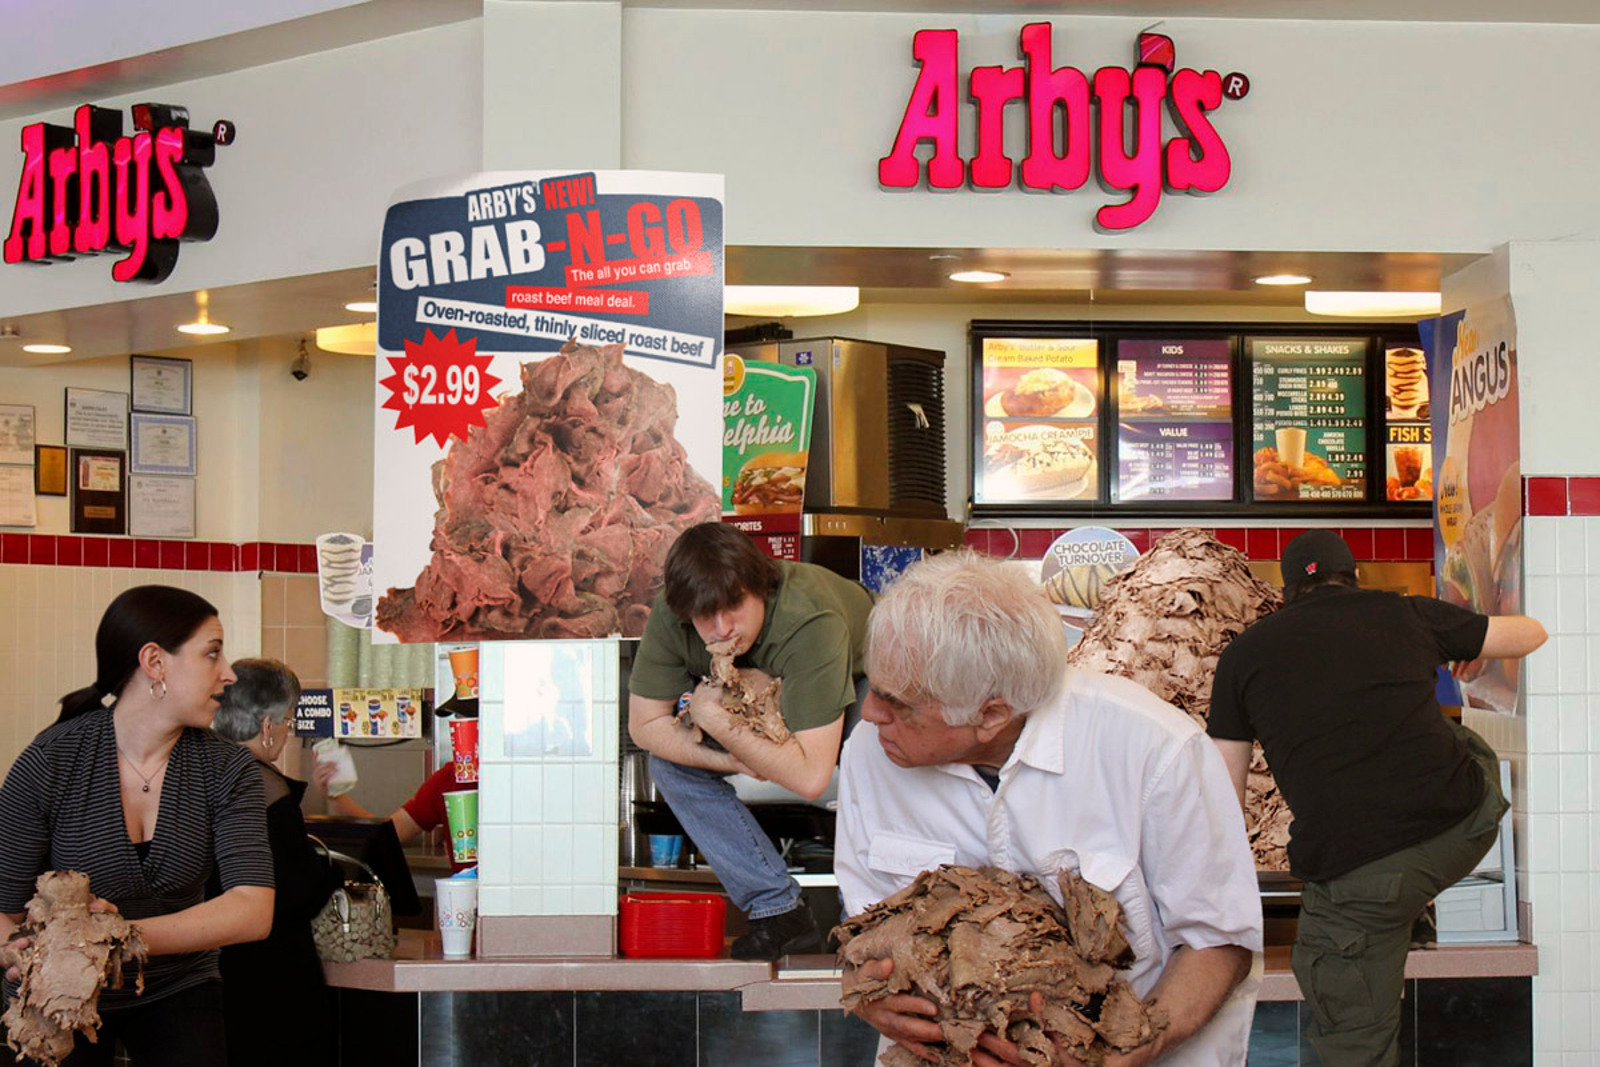 Arby's Now Charging $2.99 To Let Customers Go Behind Counter, Grab Handfuls Of Roast Beef